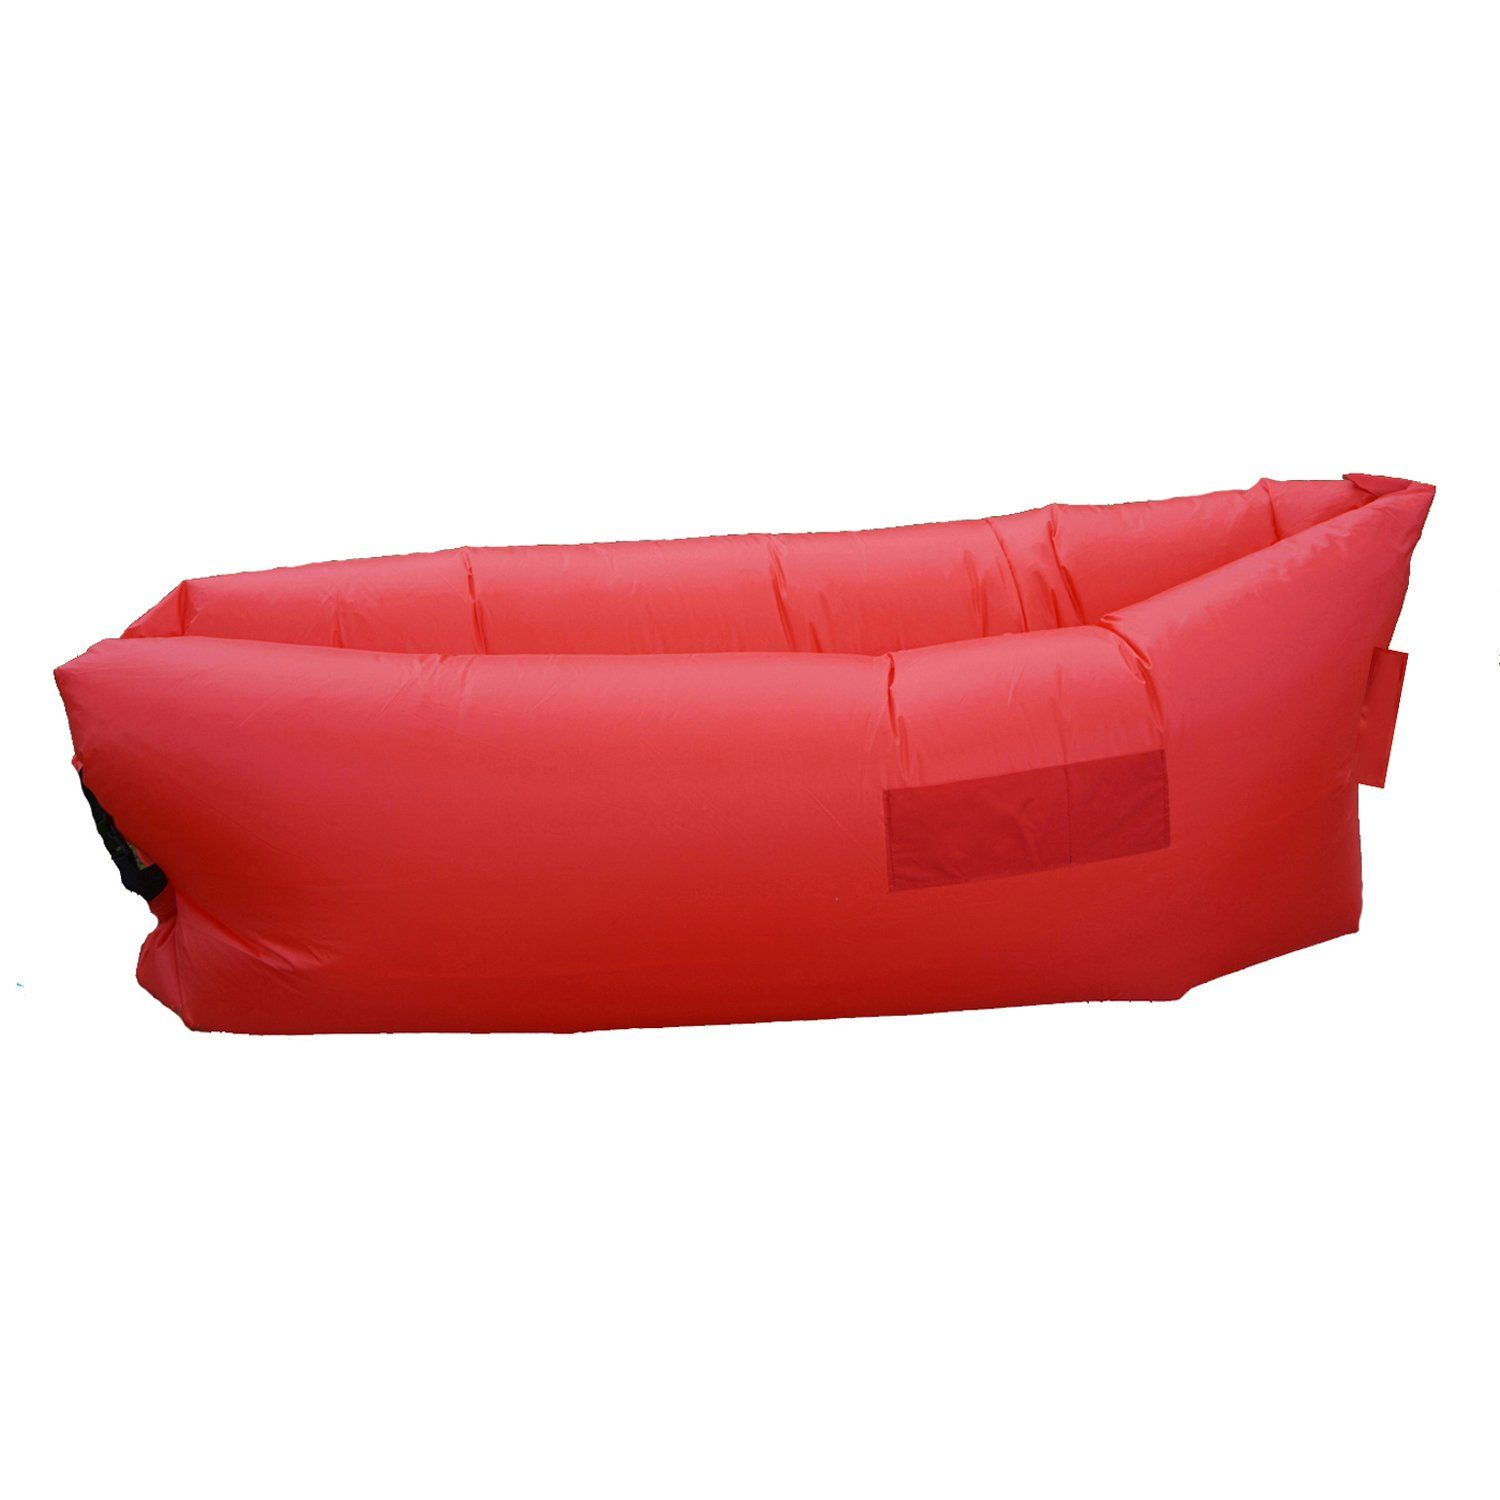 Greatever Outdoor Portable Inflatable Bag Lounger Waterproof